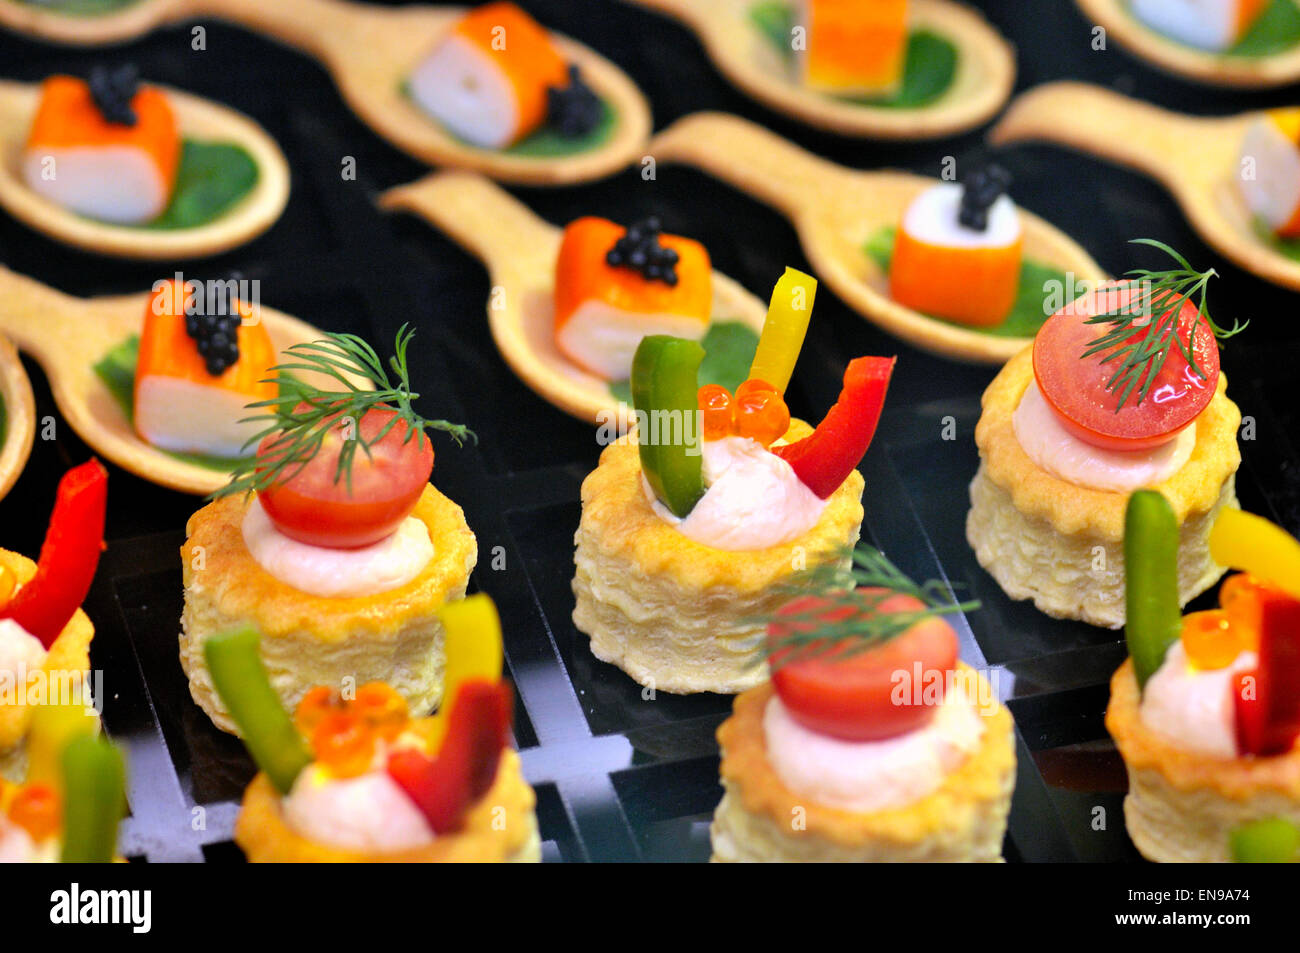 appetizers, vol-au-vent in a food exhibition stock photo, royalty